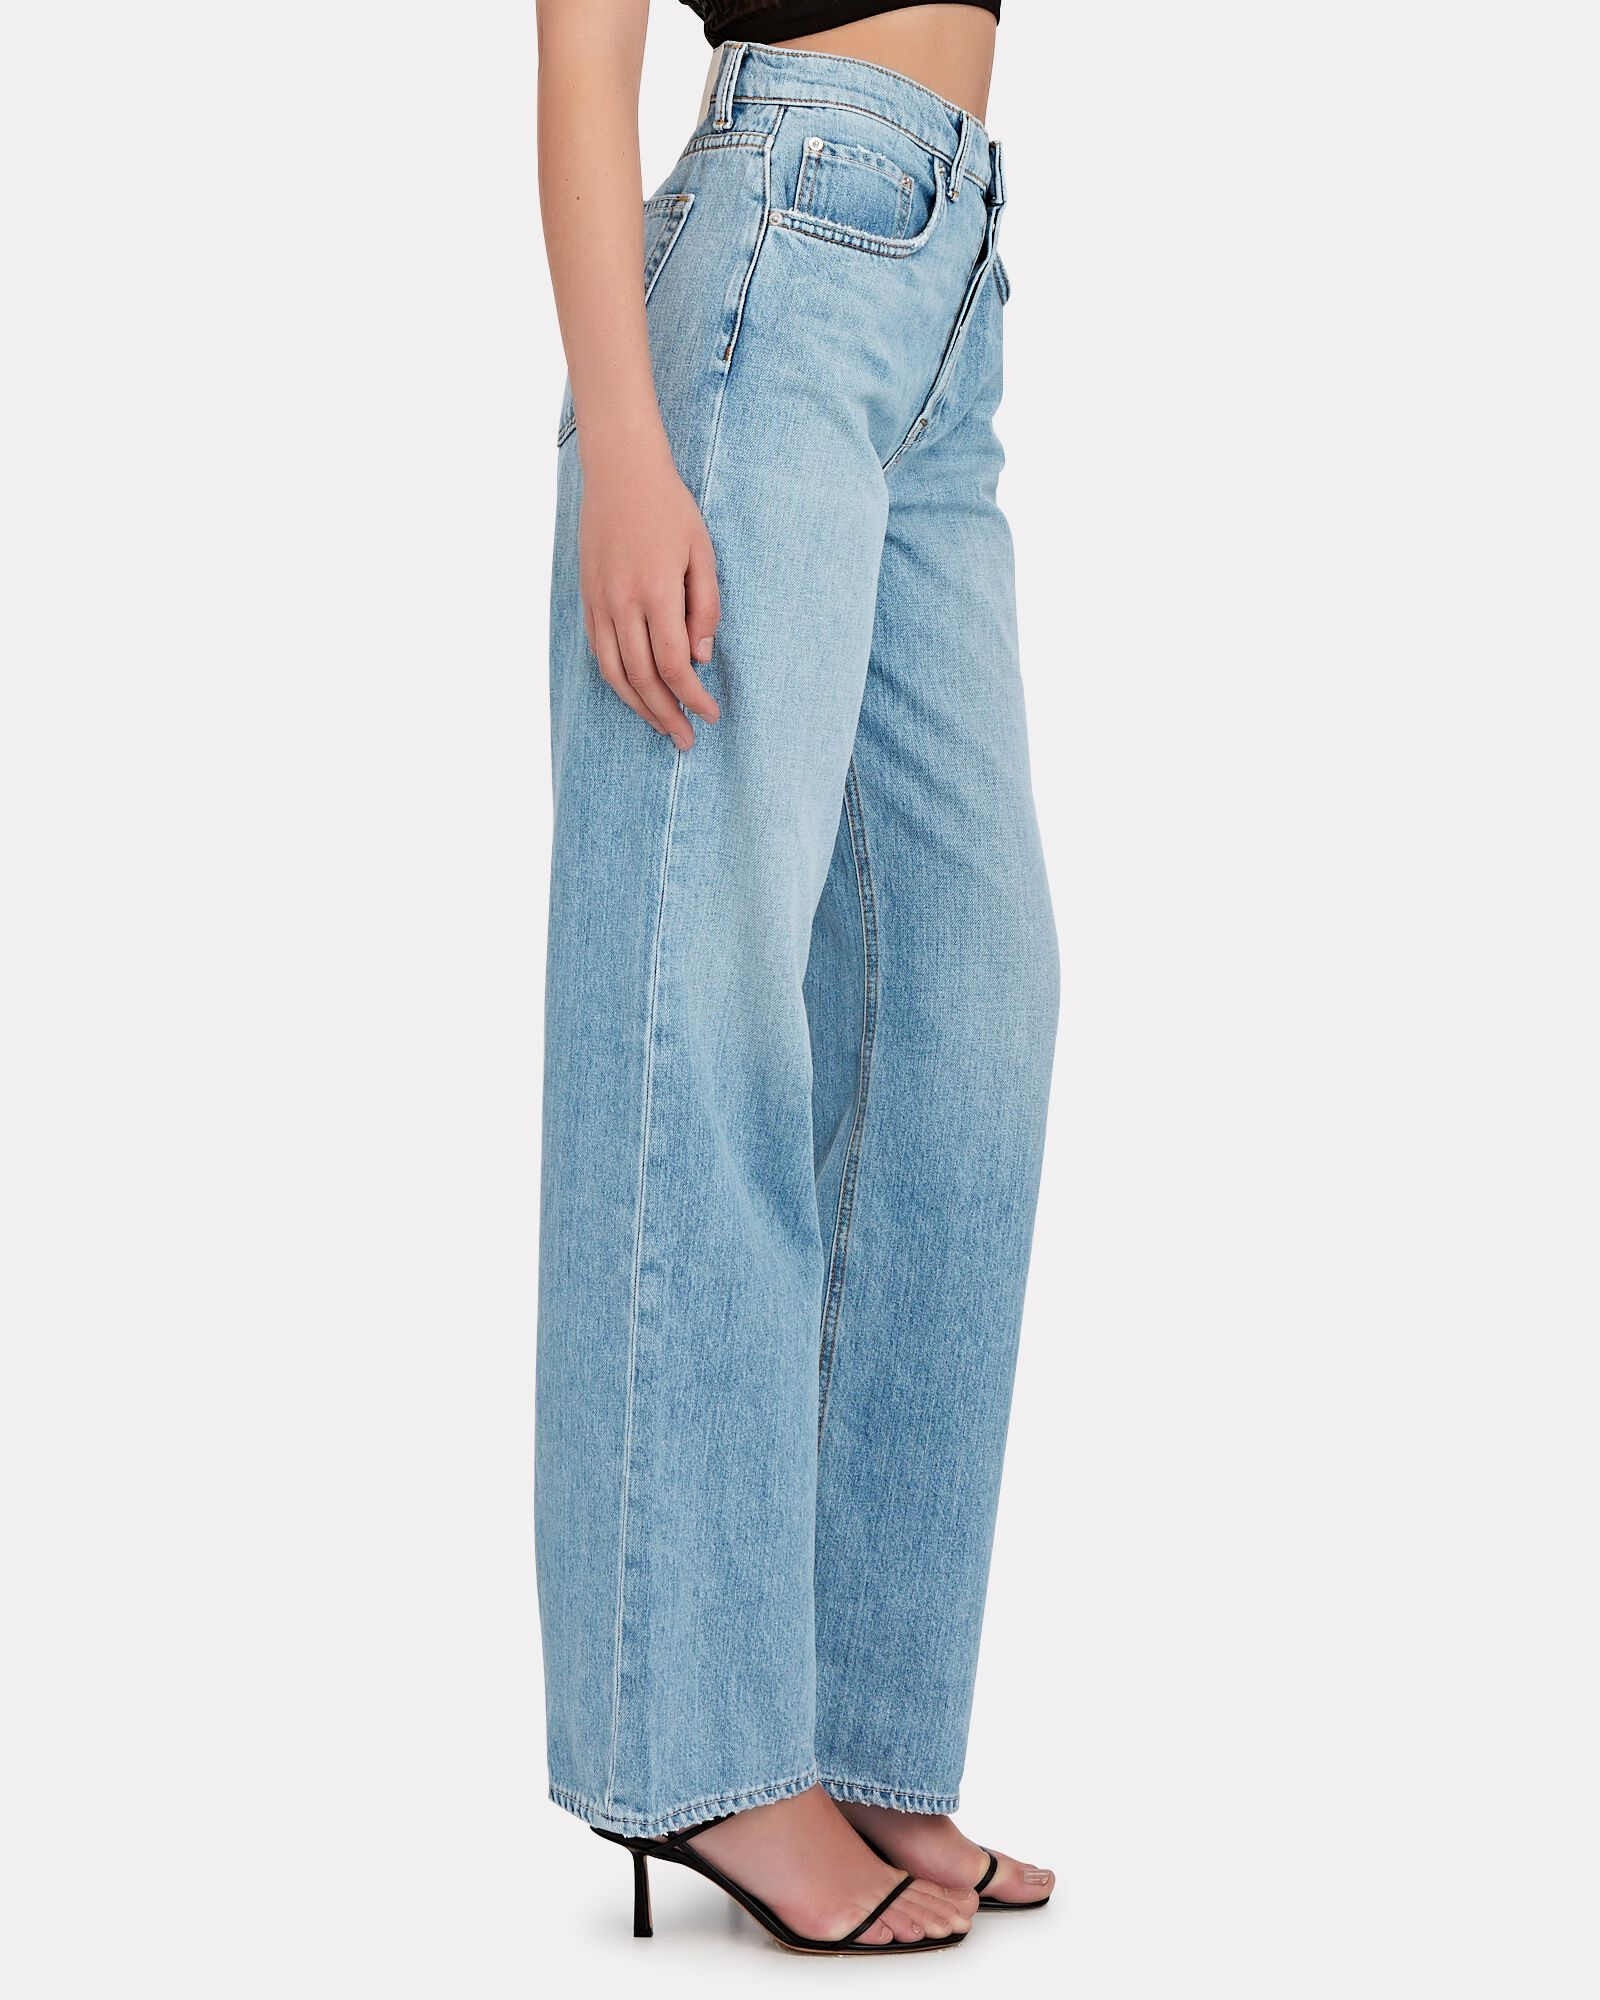 Brooklyn High-Rise Straight-Leg Jeans, MIRACLE MILE, hi-res